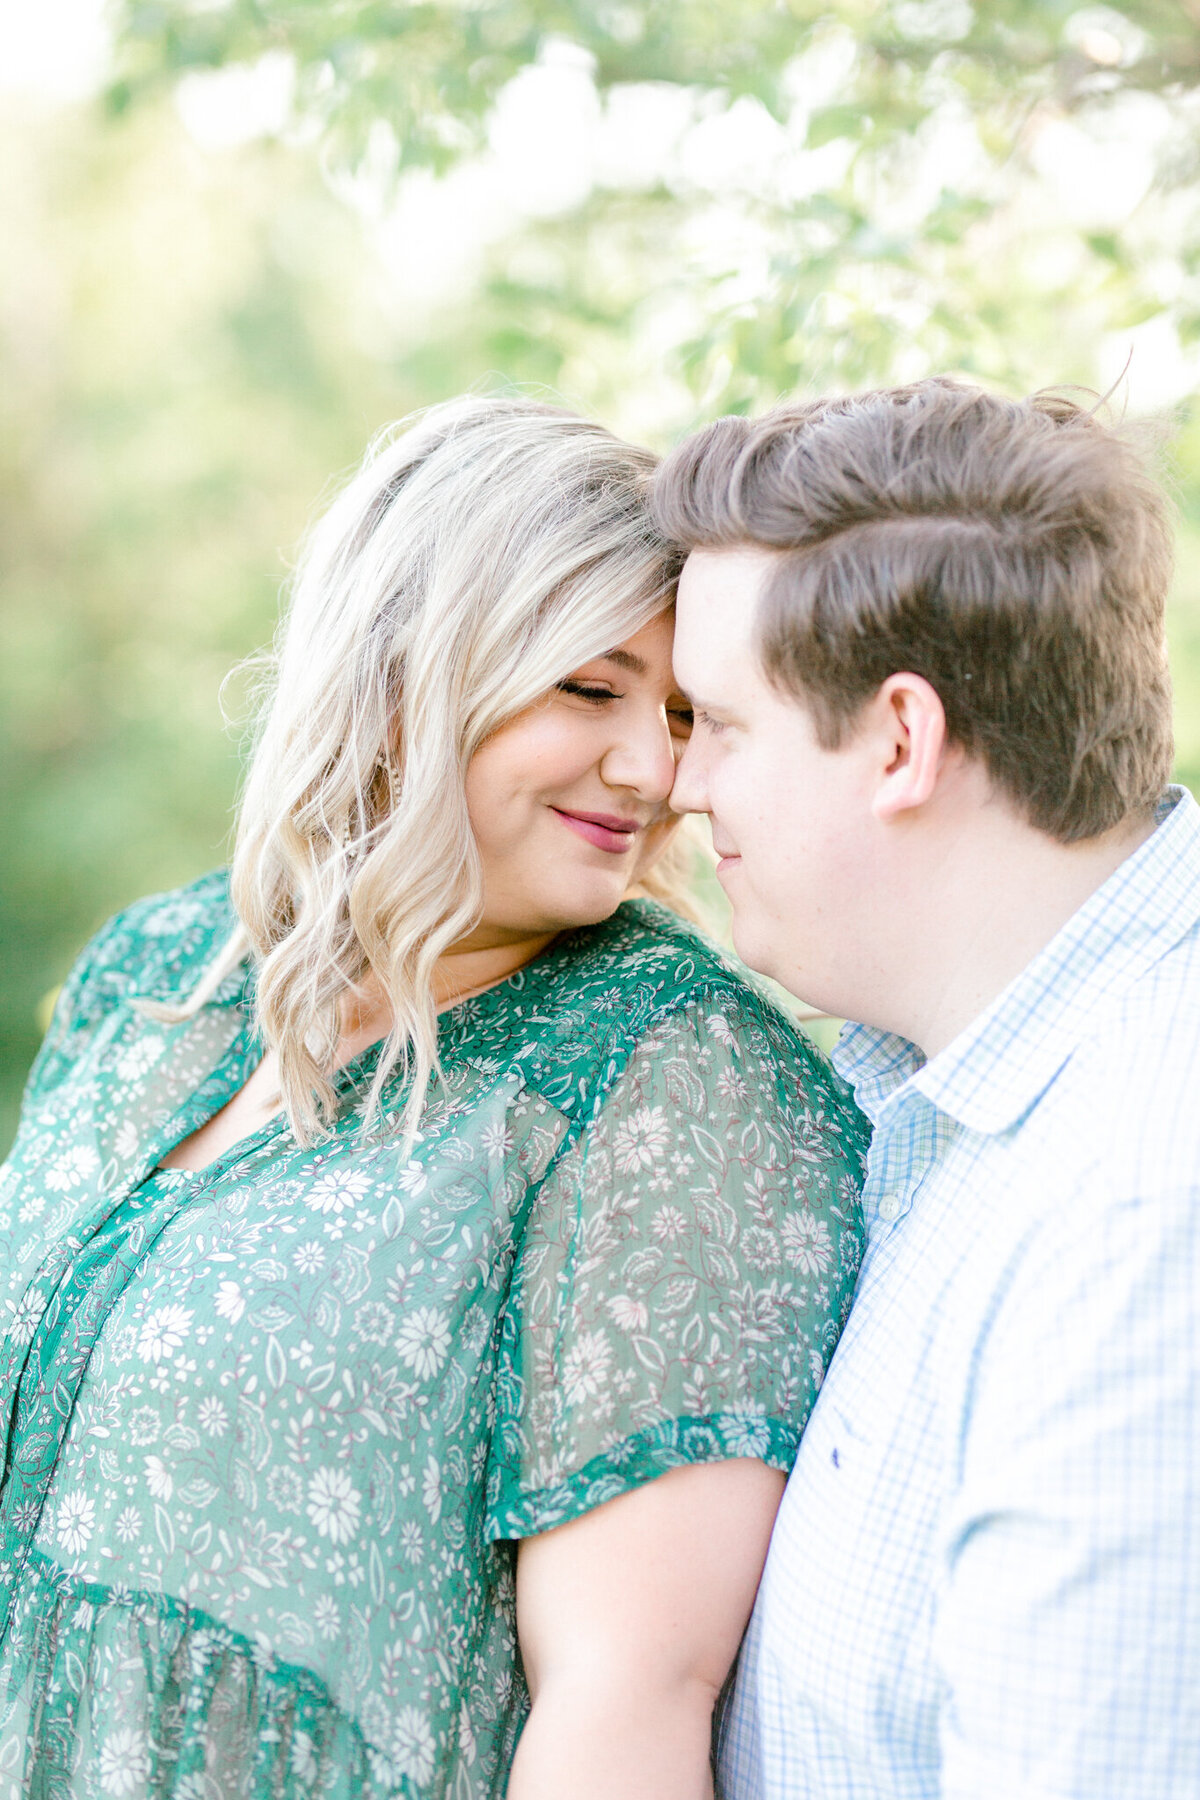 Maddie & Chris Engagement Session at Tandy Hills Natural Area | Sami Kathryn Photography | Dallas DFW Fort Worth Wedding and Portrait Photogapher-12